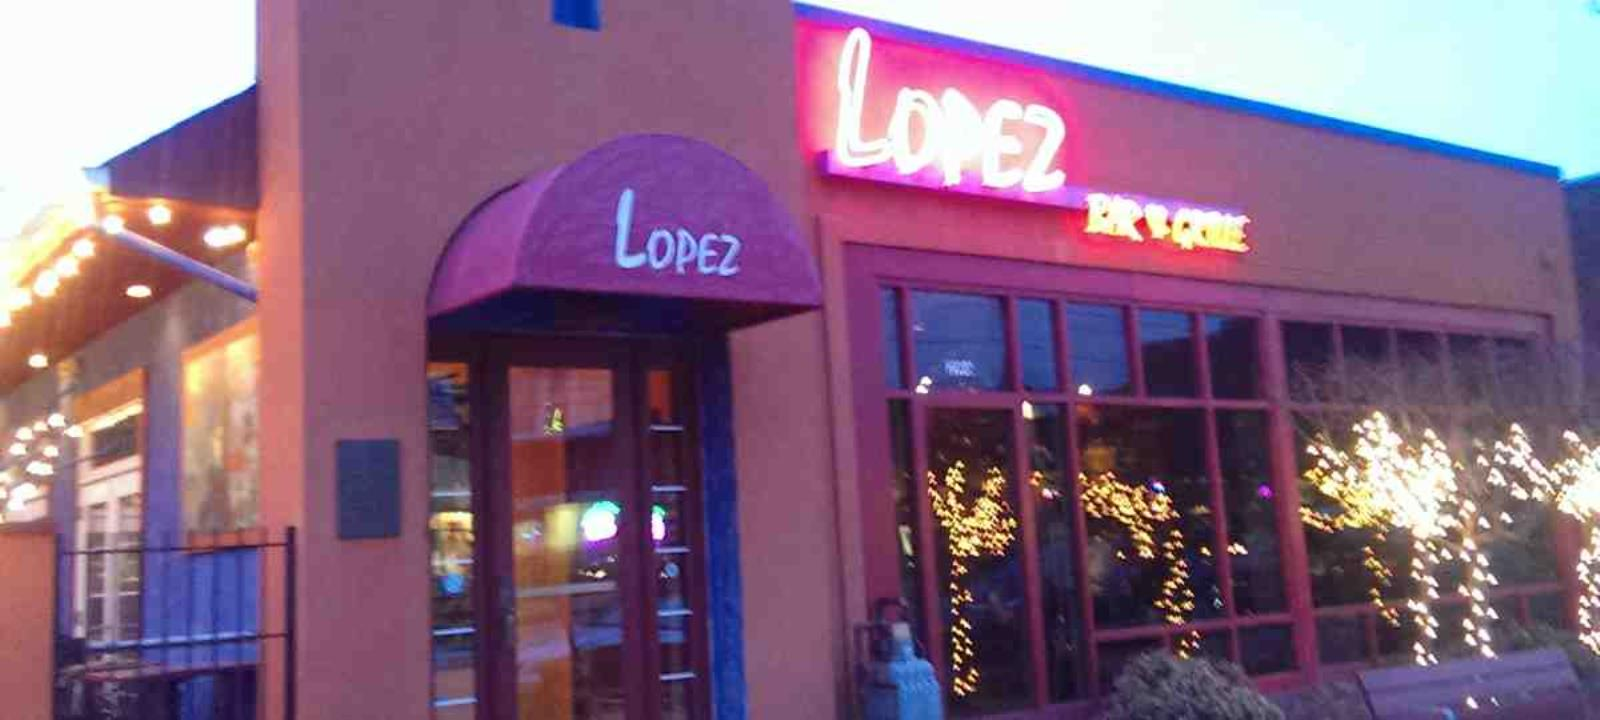 Lopez Restaurant - Picture